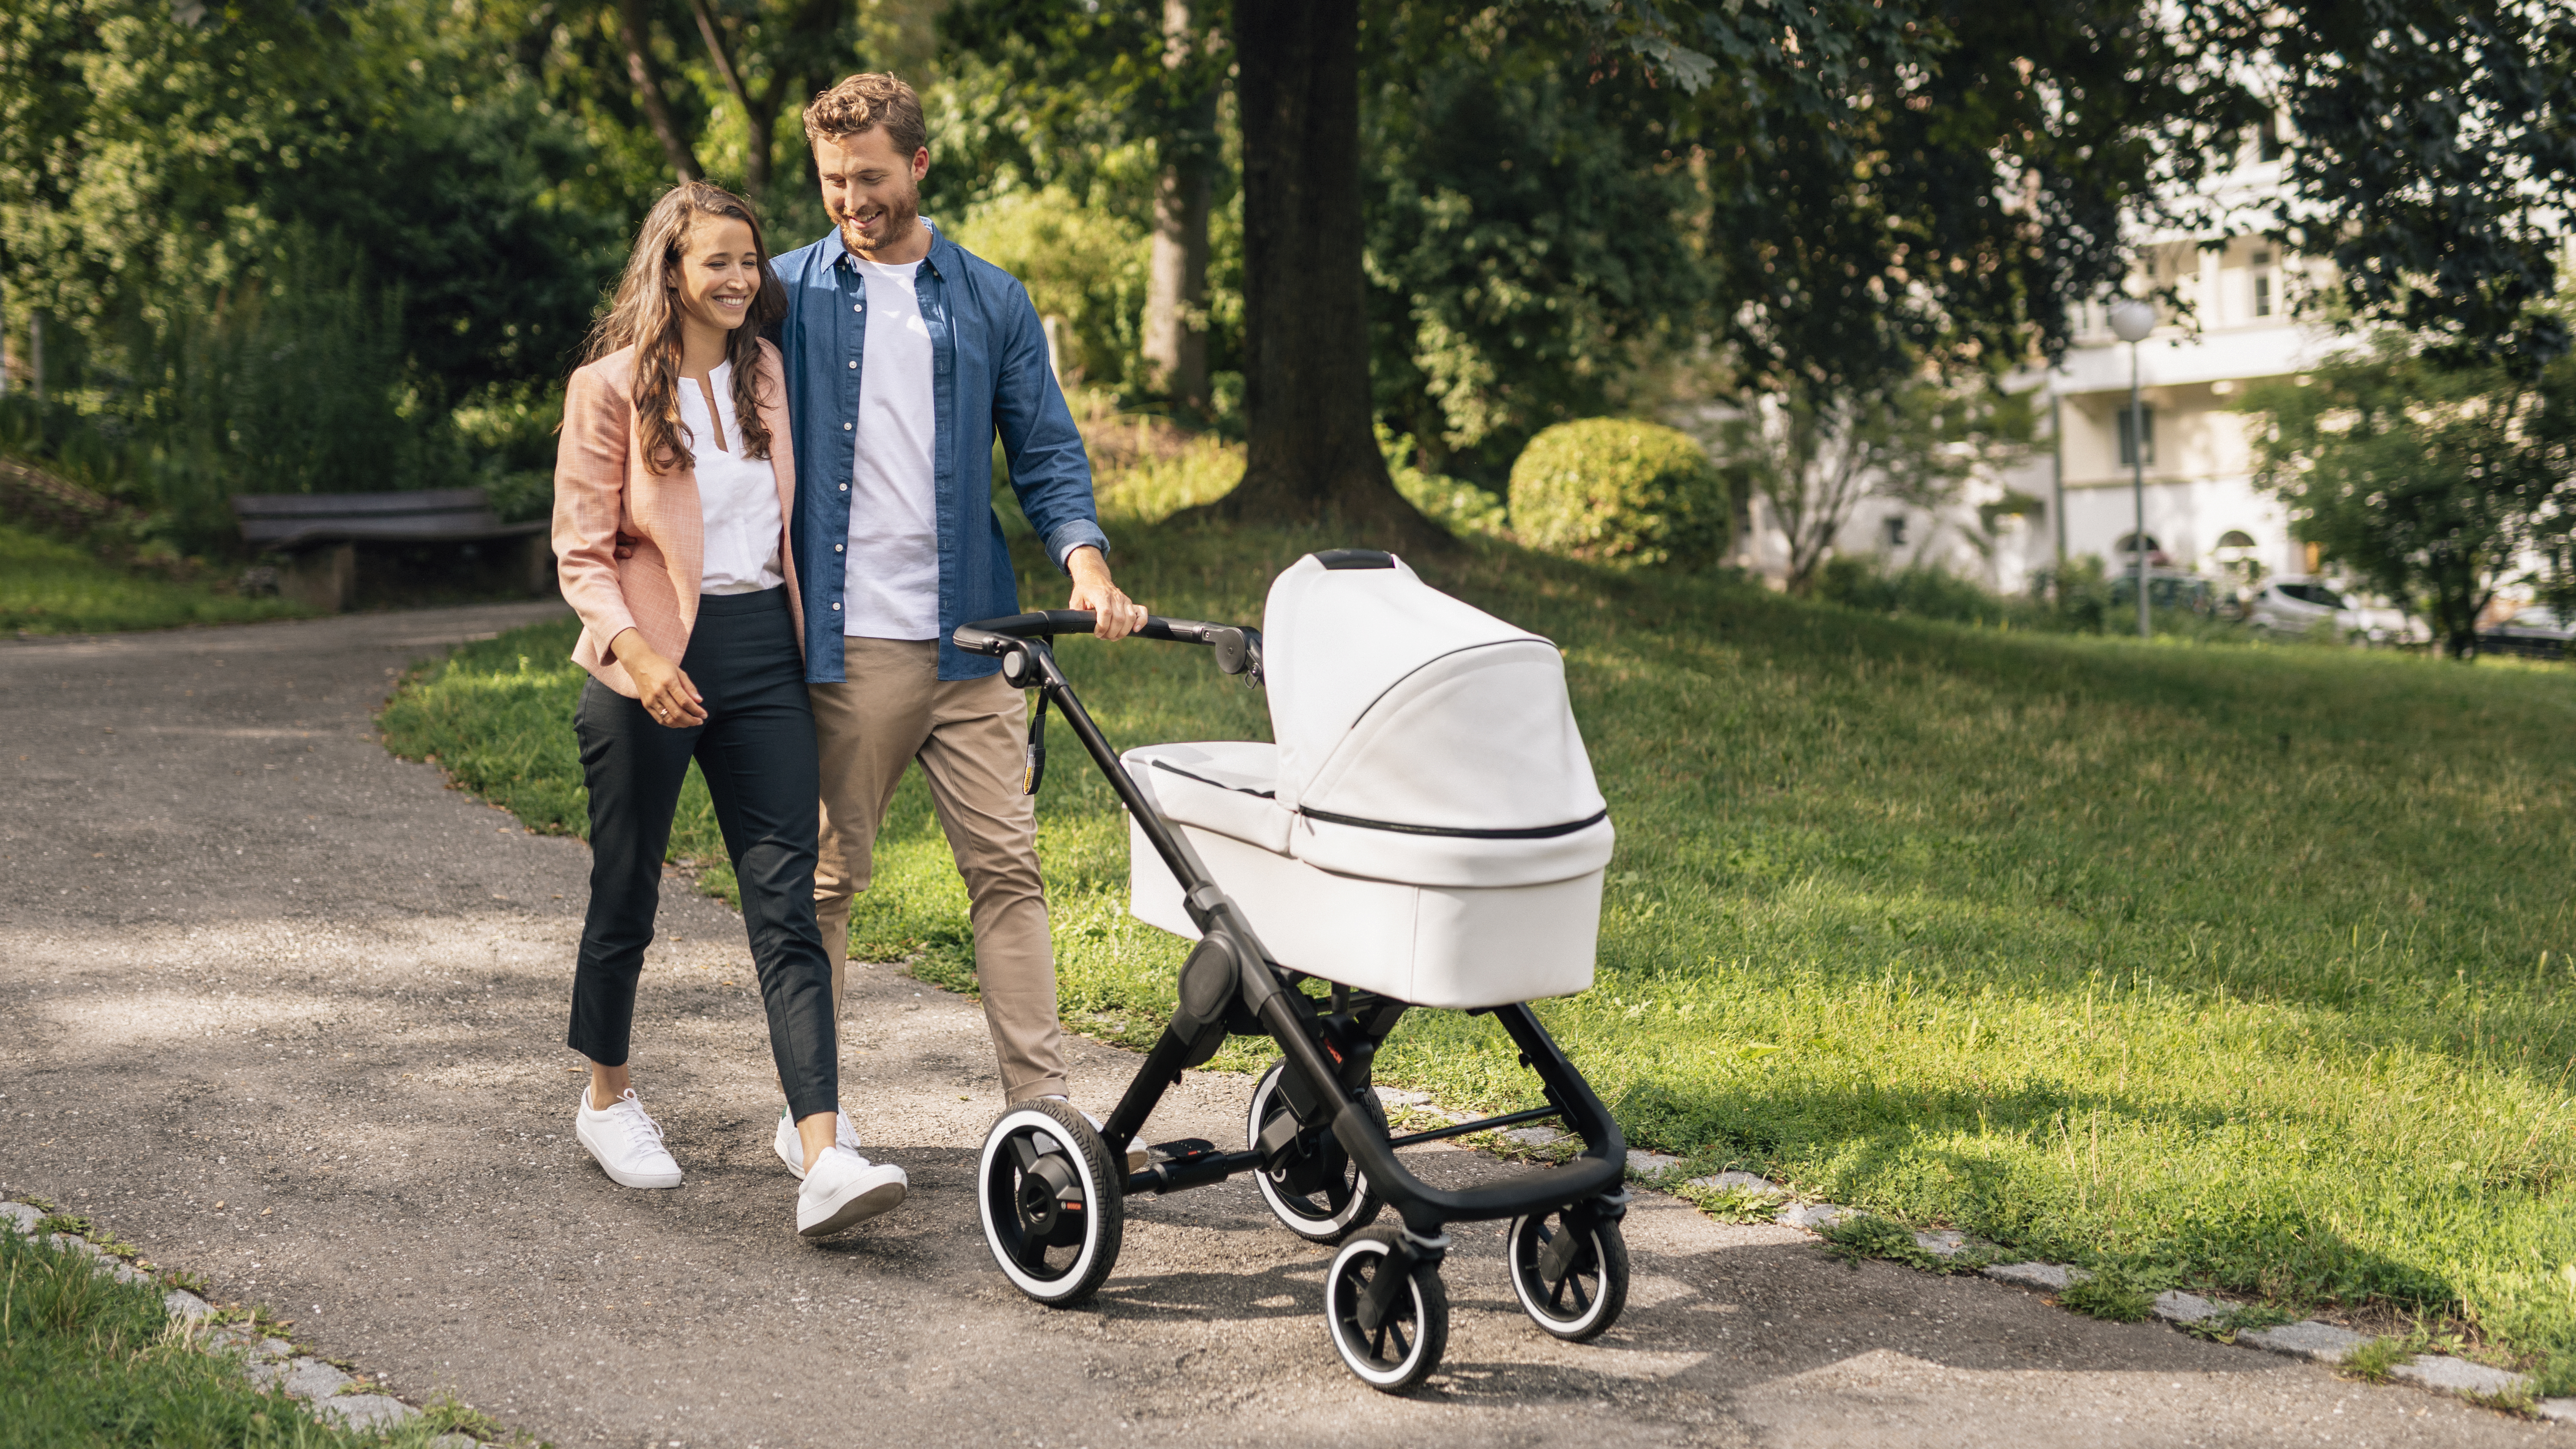 Bosch e-stroller system revolutionizes comfort and safety